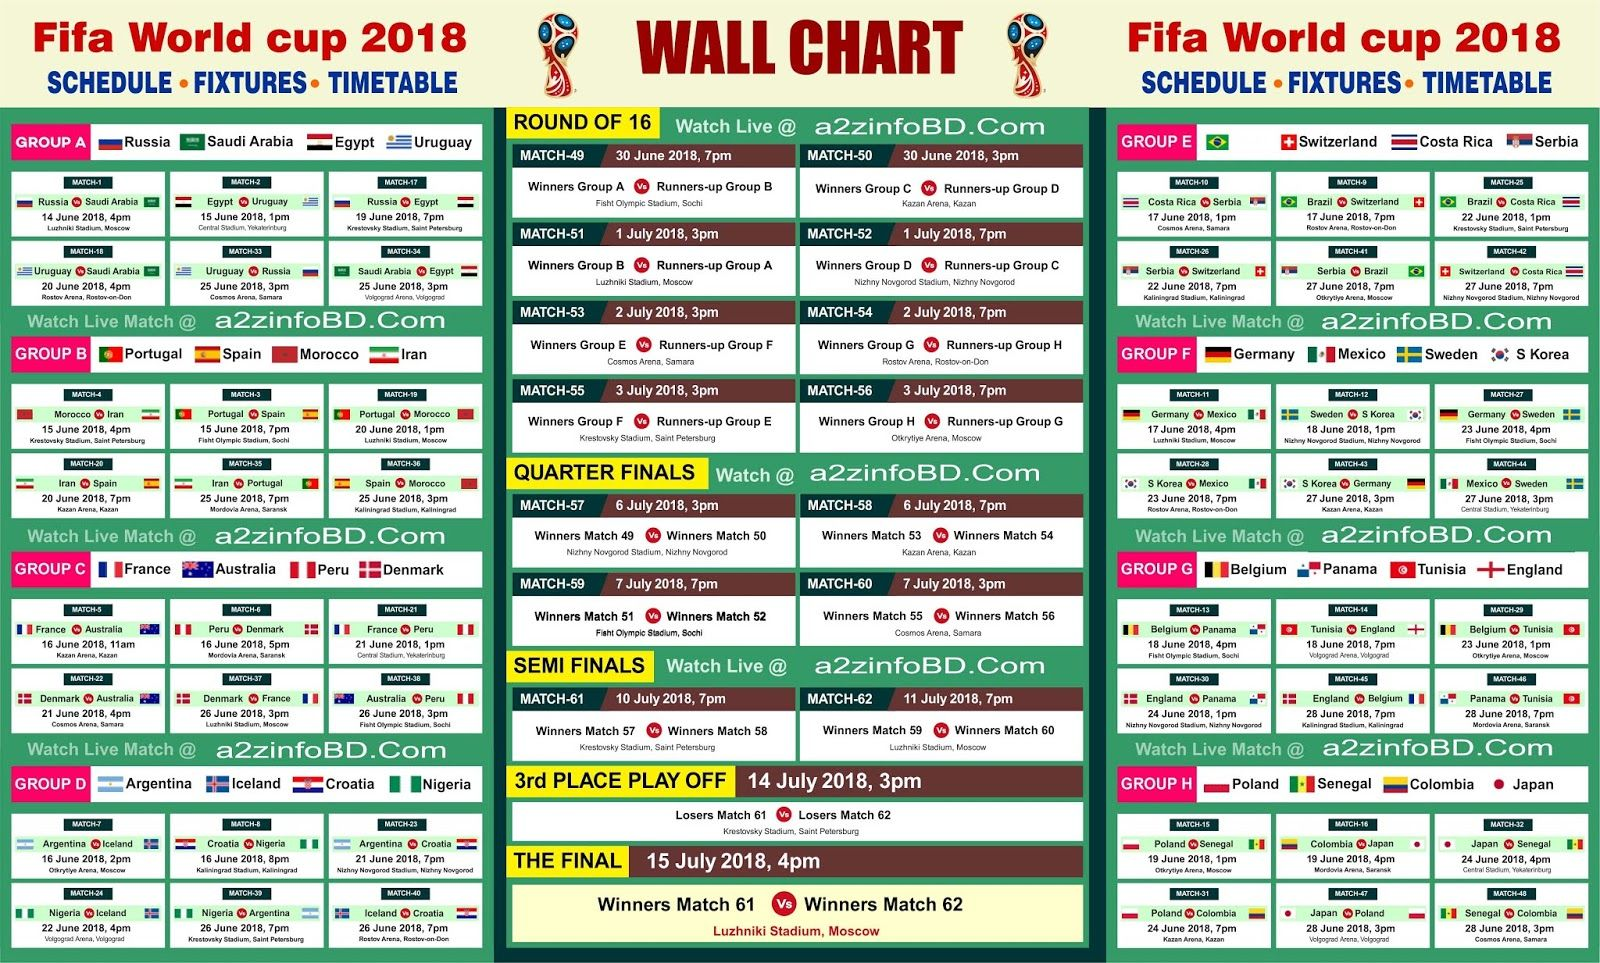 Printable Fifa World Cup 2018 Schedule World Cup Fixtures World Cup Match World Cup 2018